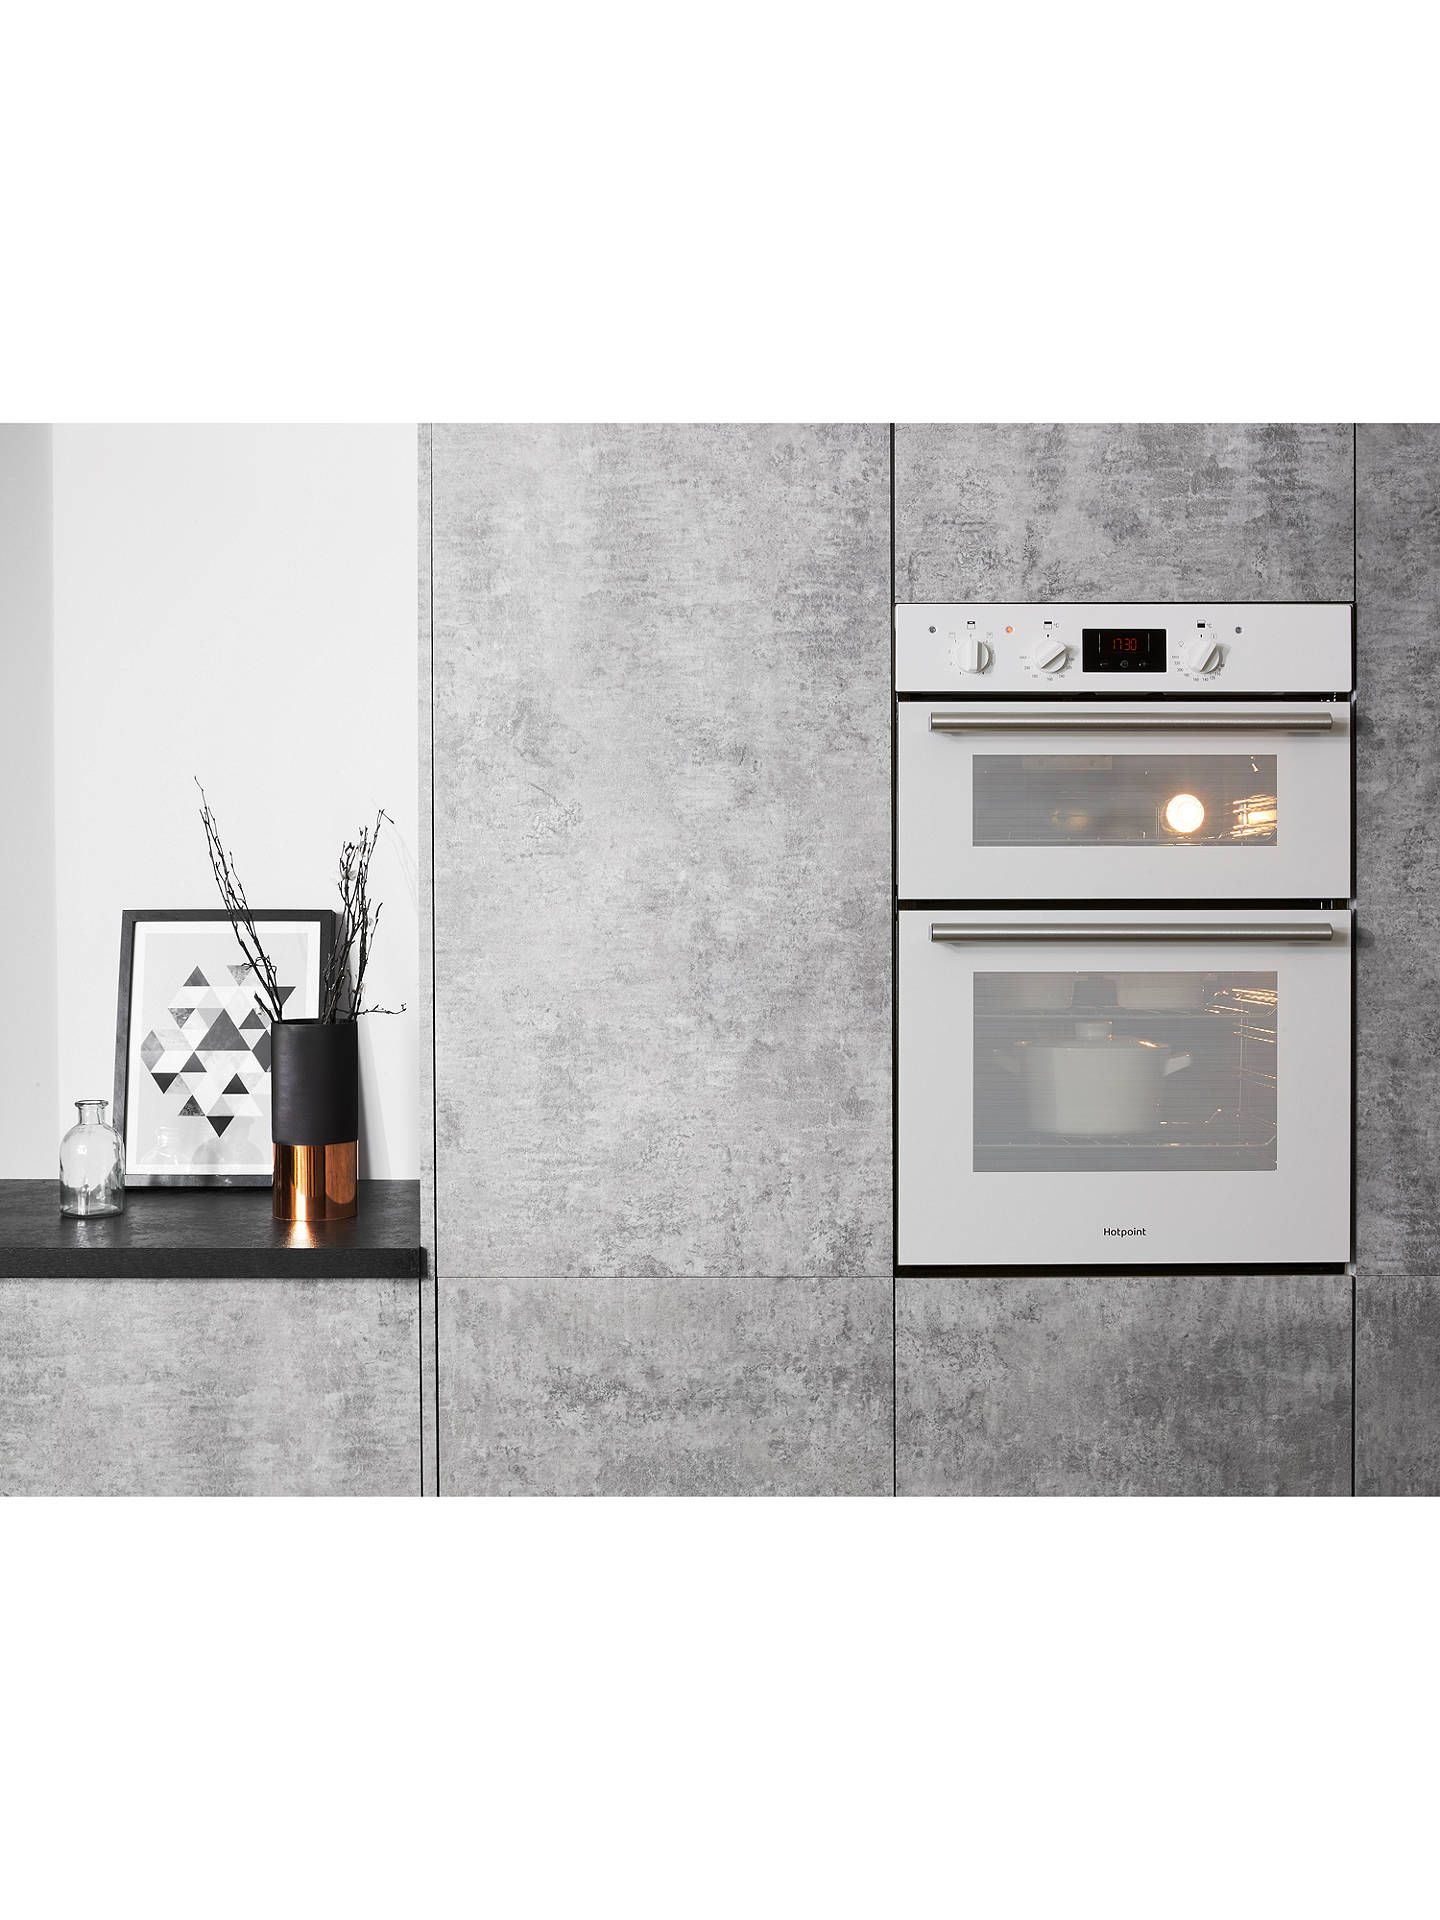 Hotpoint Dd2540wh Class 2 Built In Double Oven White At